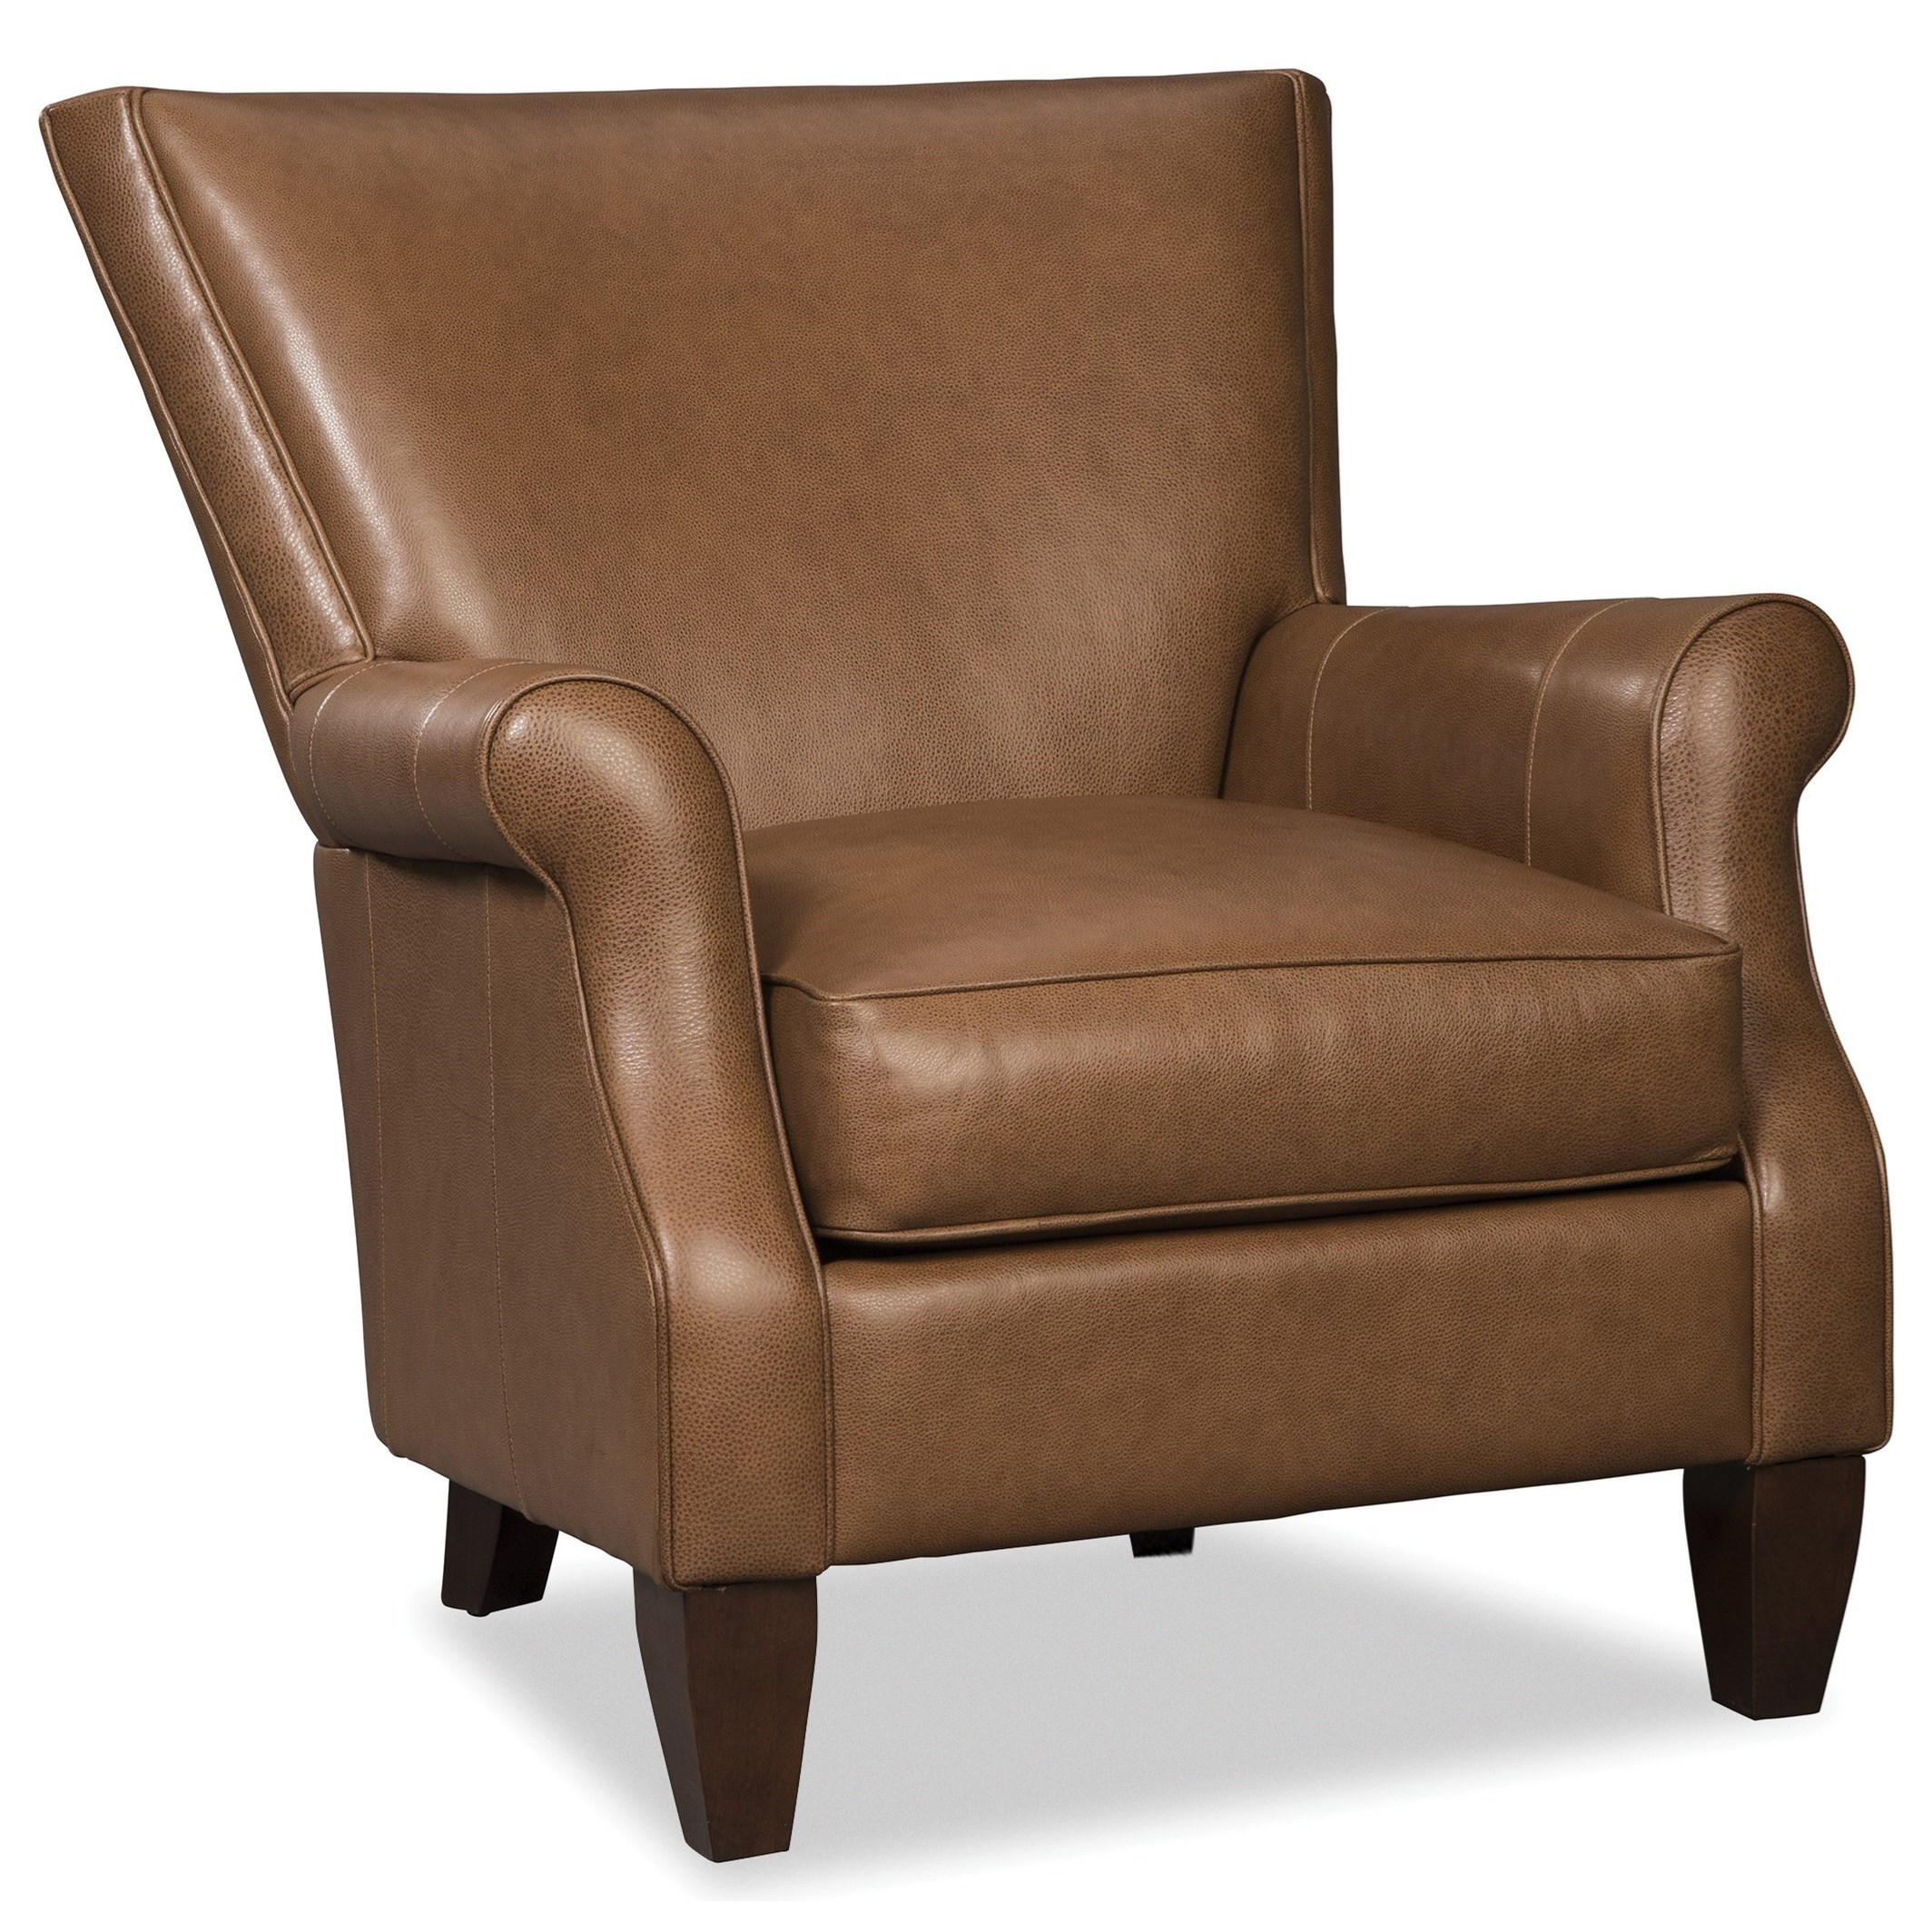 L061310 Chair by Craftmaster at Baer's Furniture